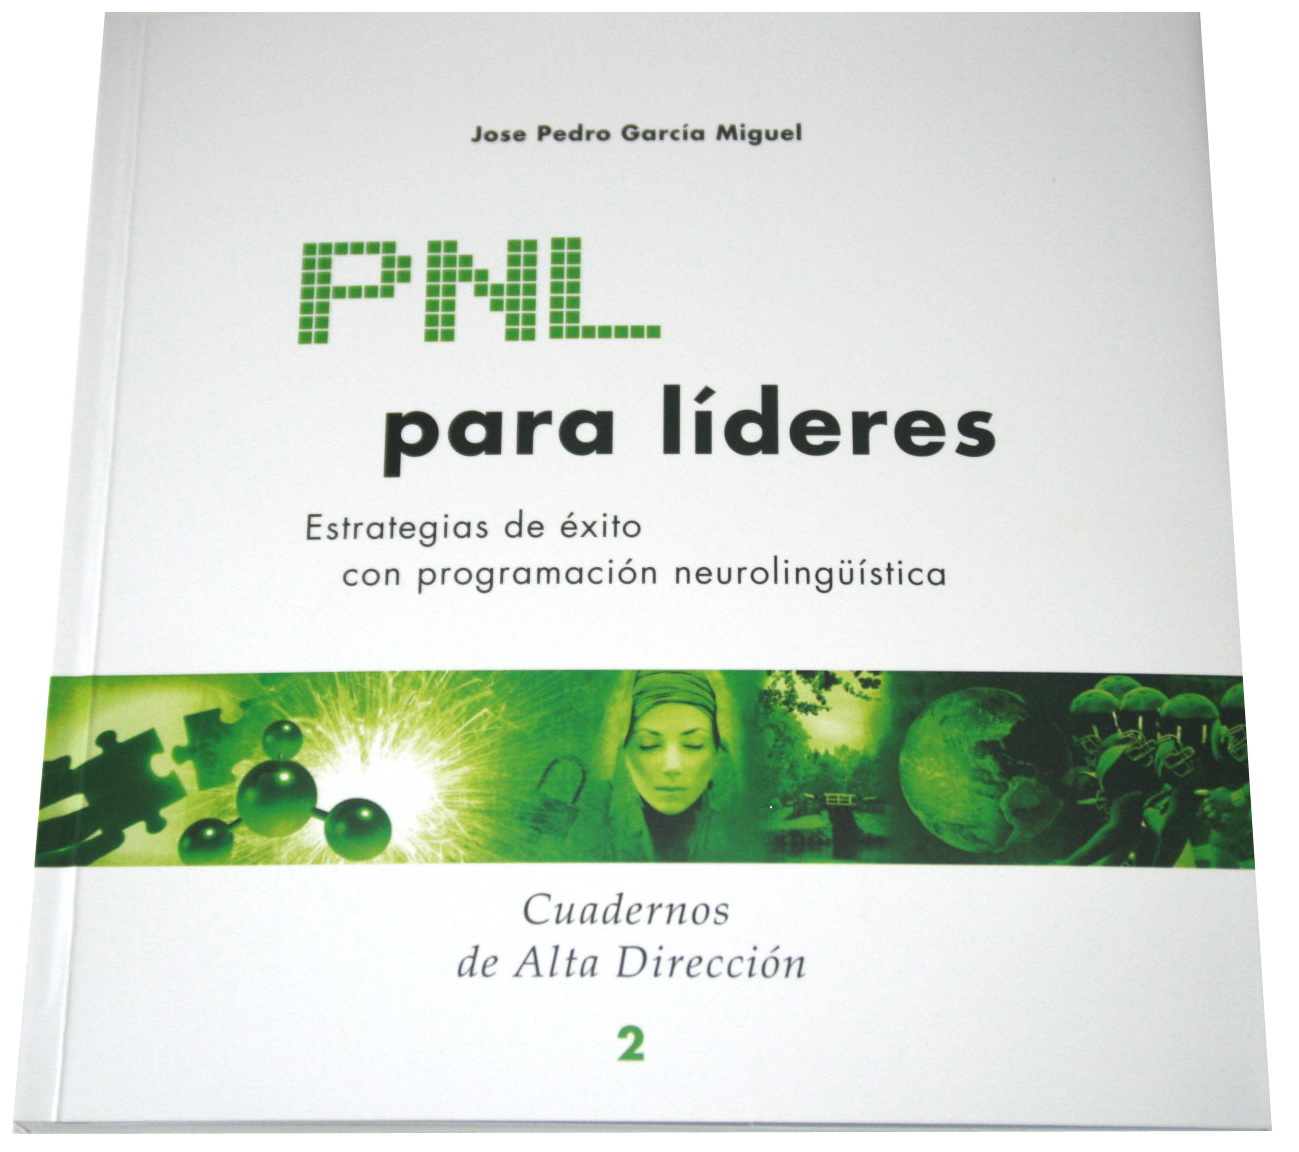 PNL para lideres managers y formadores